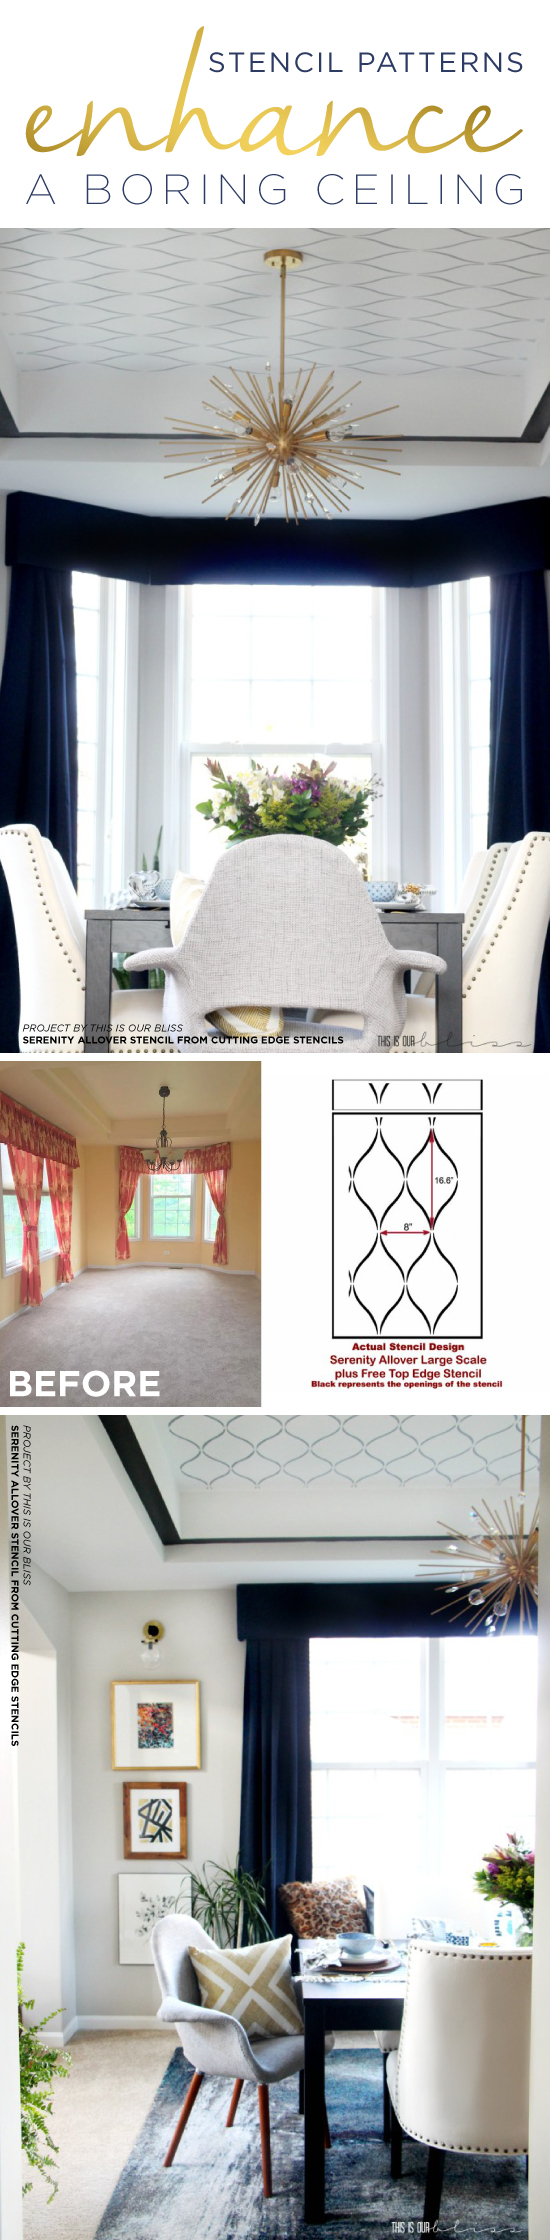 Cutting Edge Stencils shares a DIY dining room ceiling that was stenciled with the Serenity Allover Stencil, a geometric pattern. http://www.cuttingedgestencils.com/serenity-allover-stencil-trellis-design-wall-pattern-diy-decor.html